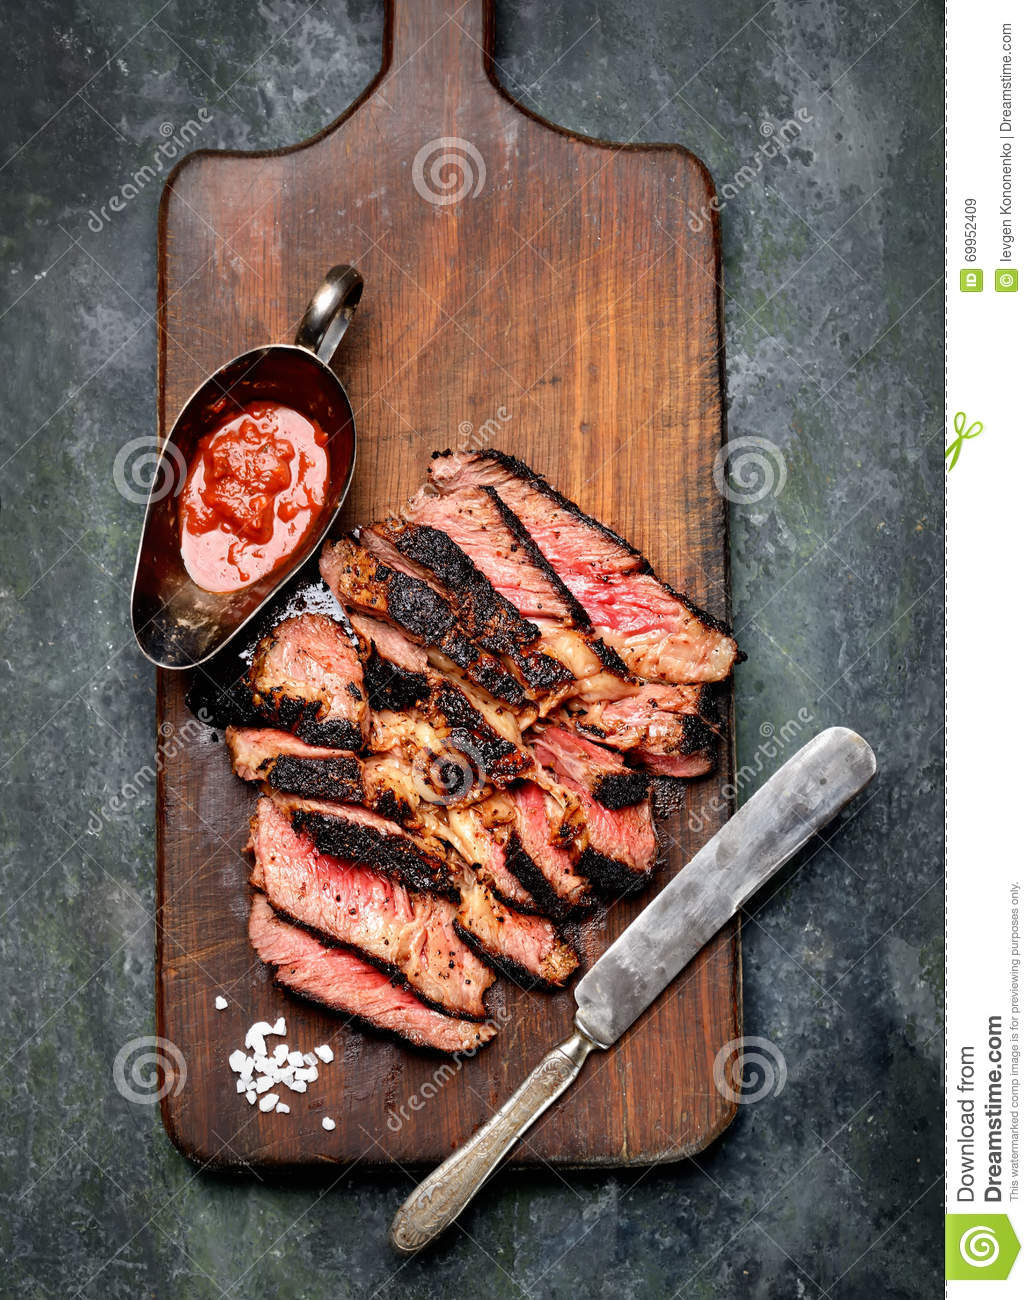 how to hold a fork when cutting meat